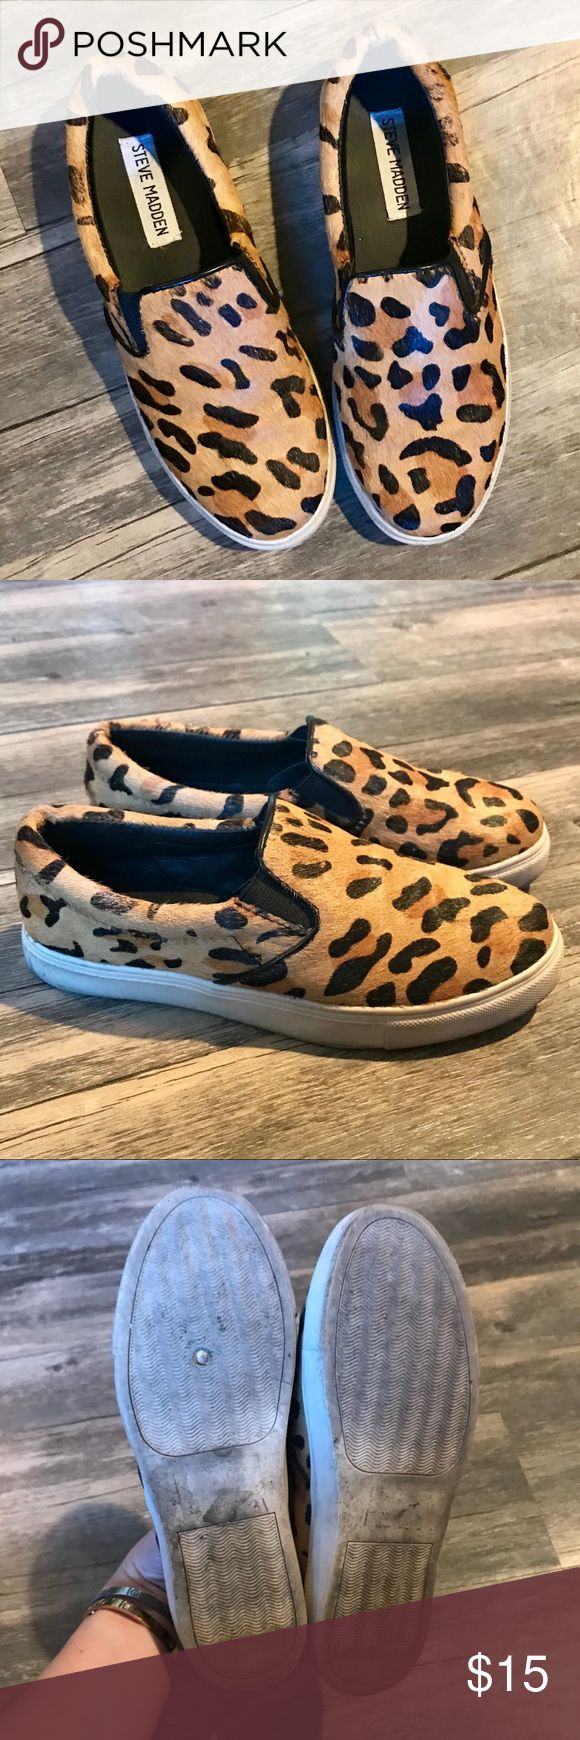 Steve Madden Leopard Print Slip On Sneakers The cutest Steve Madden leopard print slip on sneakers! The perfect comfort chic! Great used condition with a tiny amount of wear as shown in the last picture. Bundle 2+ items and save 20%! Steve Madden Shoes Sneakers